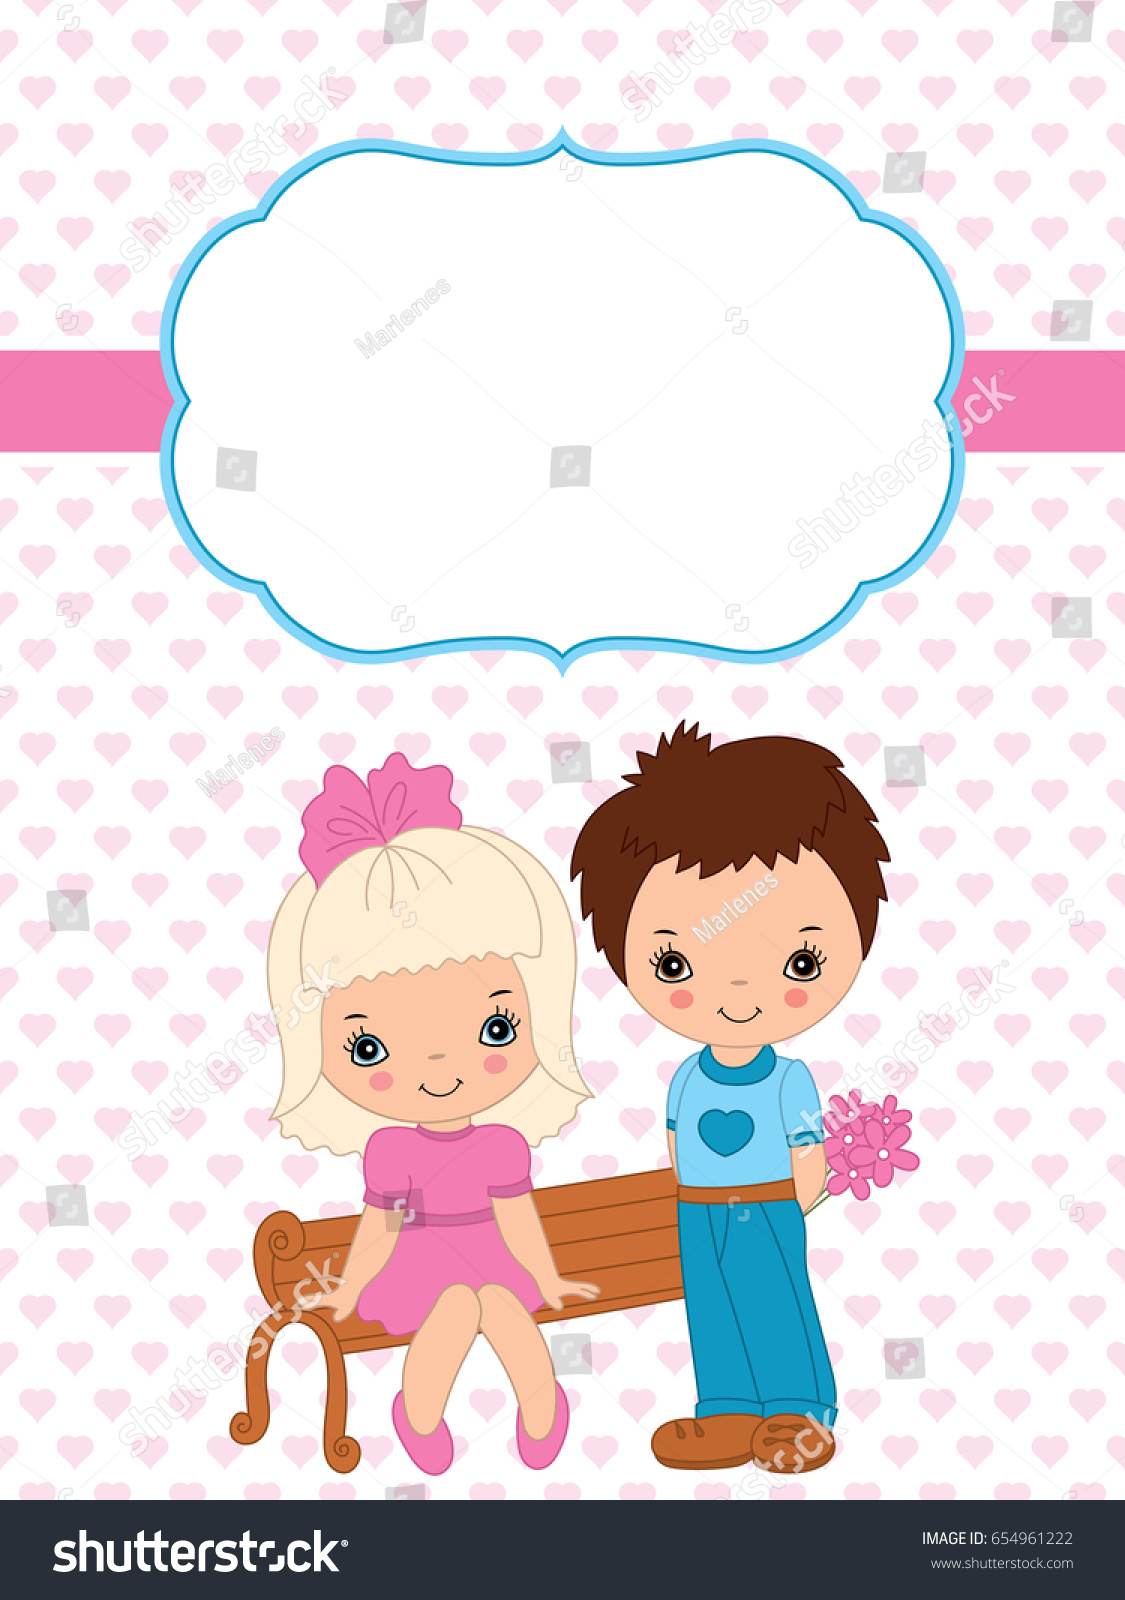 Vector valentines greeting card template cute stock vector 654961222 vector valentines greeting card template cute stock vector 654961222 shutterstock m4hsunfo